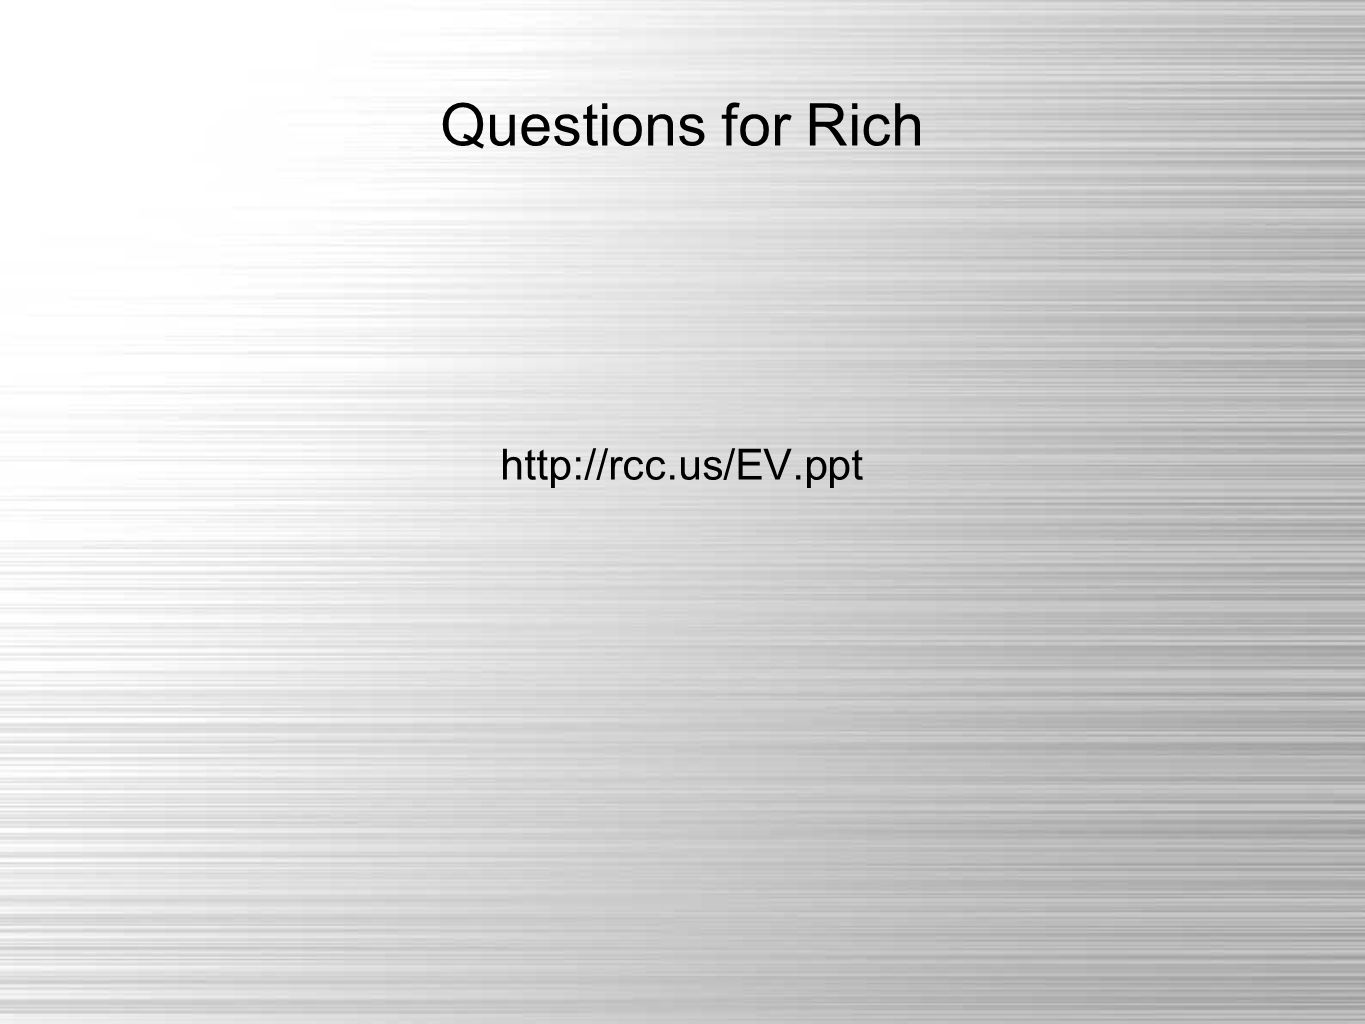 Questions for Rich http://rcc.us/EV.ppt